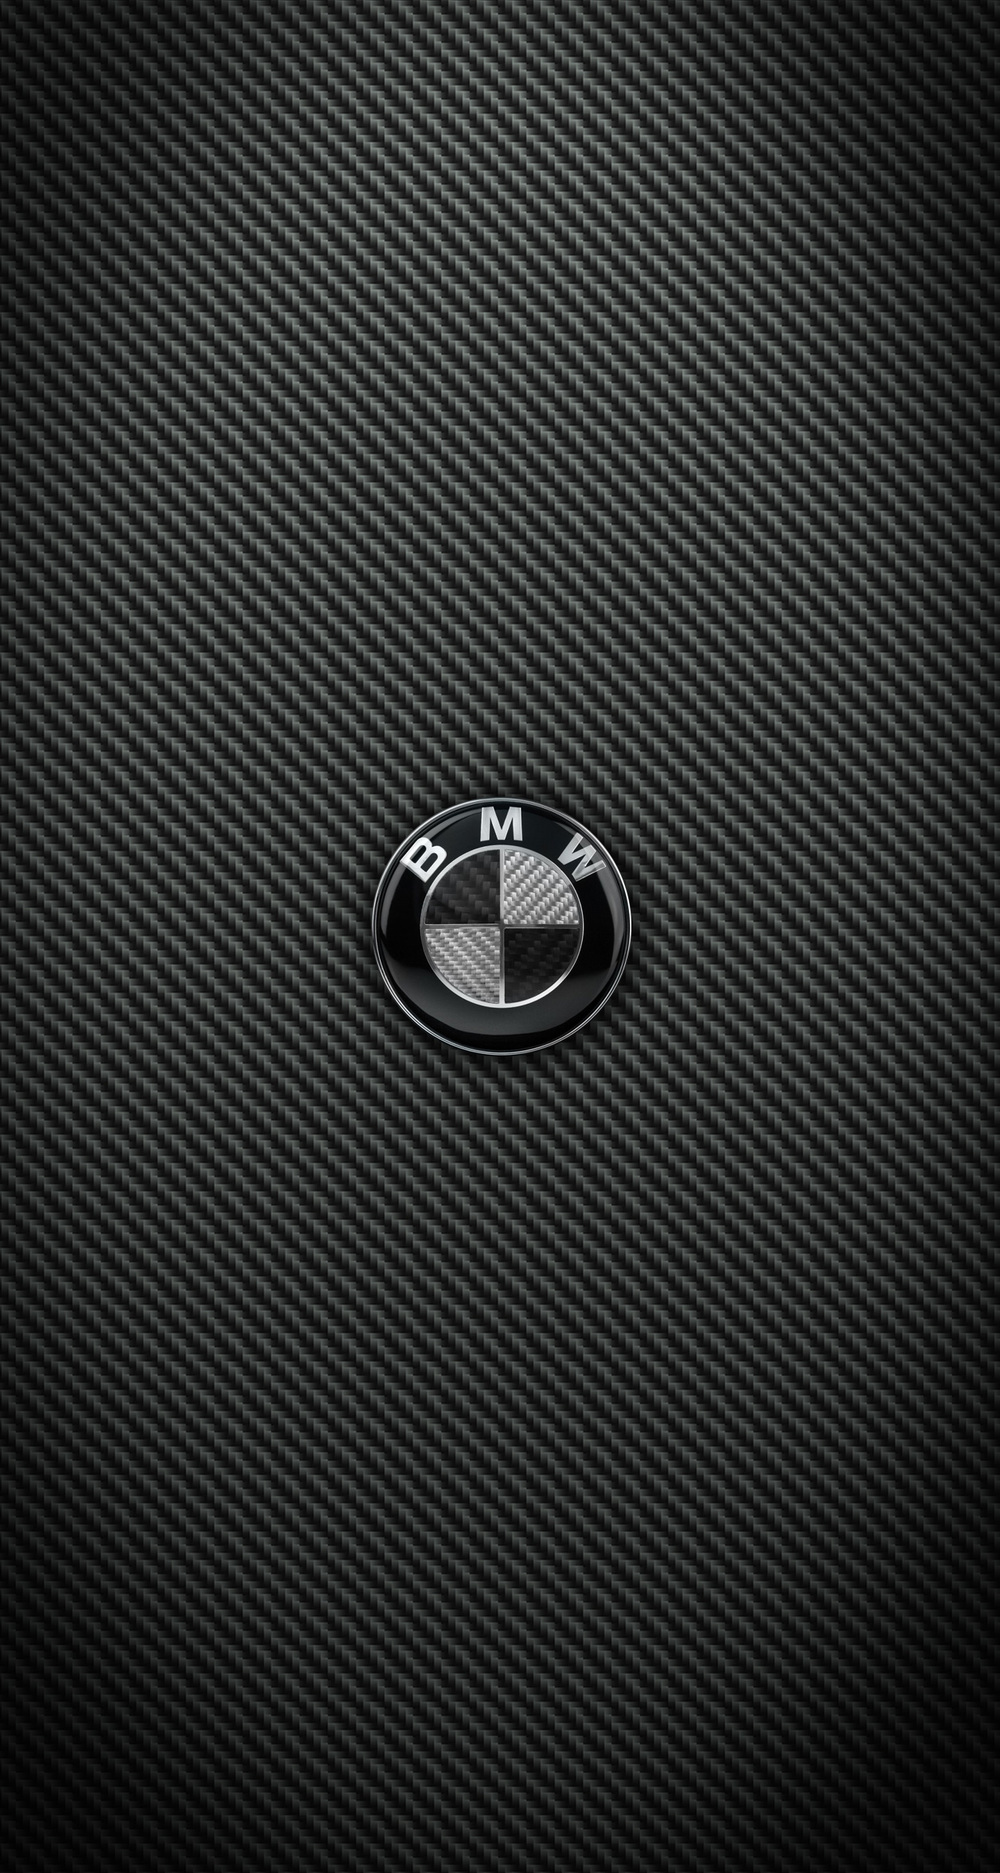 bmw m4 wallpaper iphone